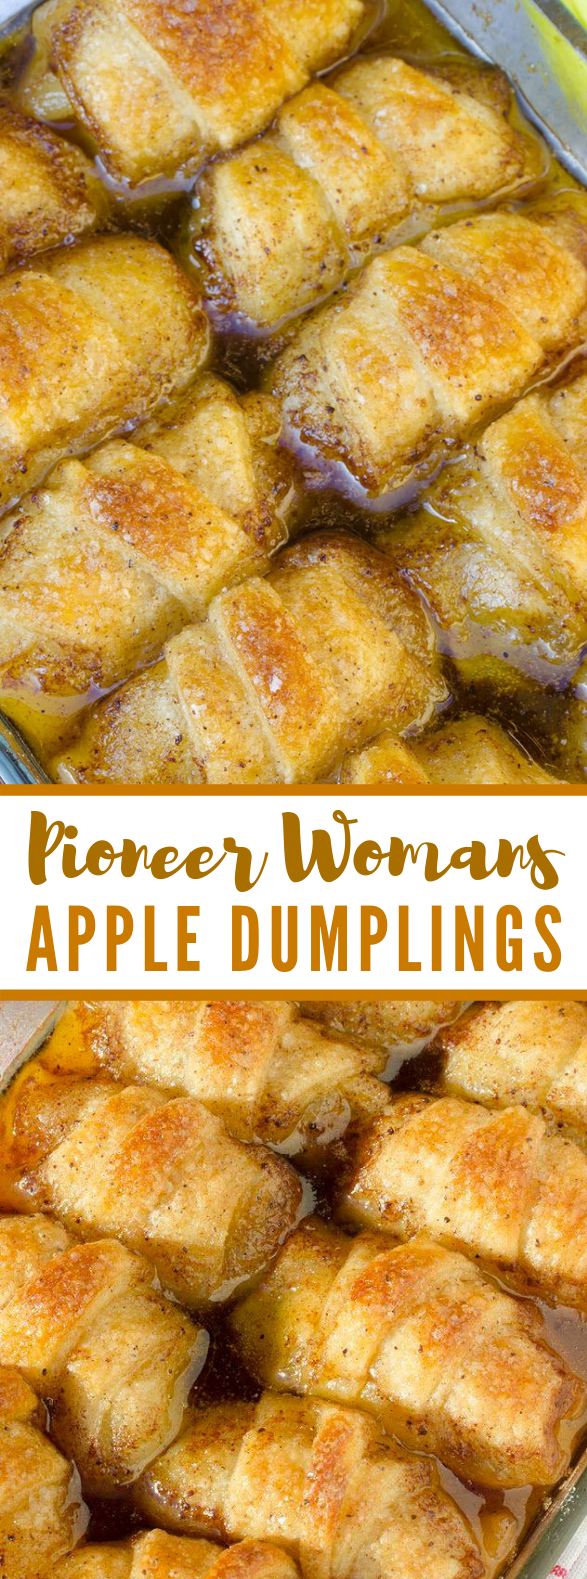 Pioneer Womans Apple Dumplings #desserts #healthy